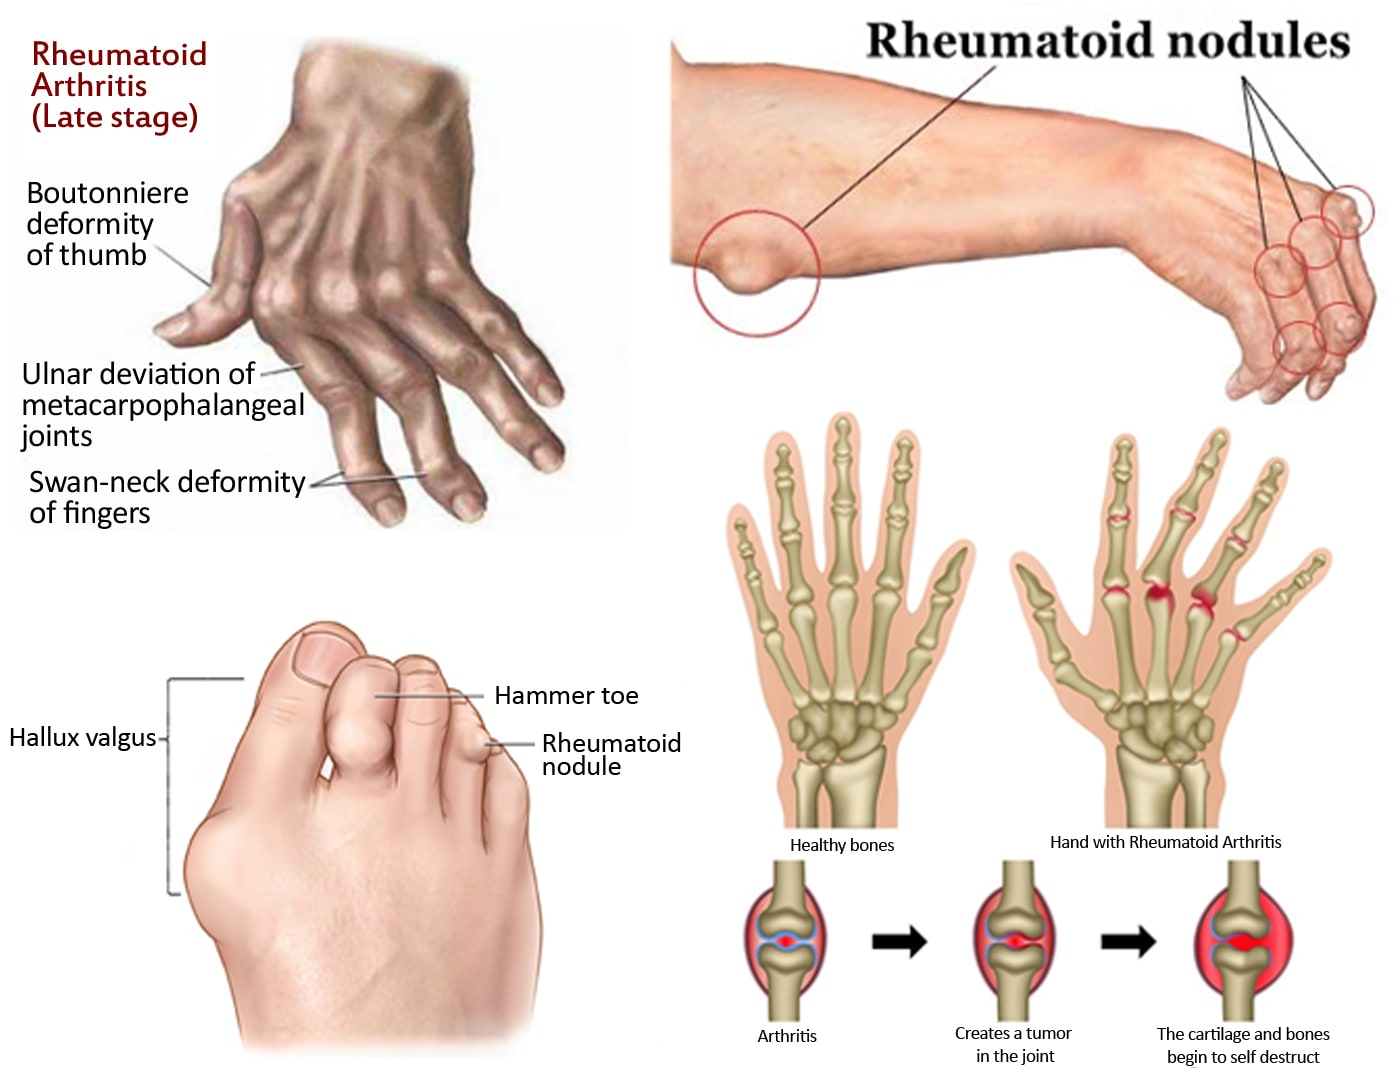 Depiction of how Rheumatoid Arthritis impacts bone joints